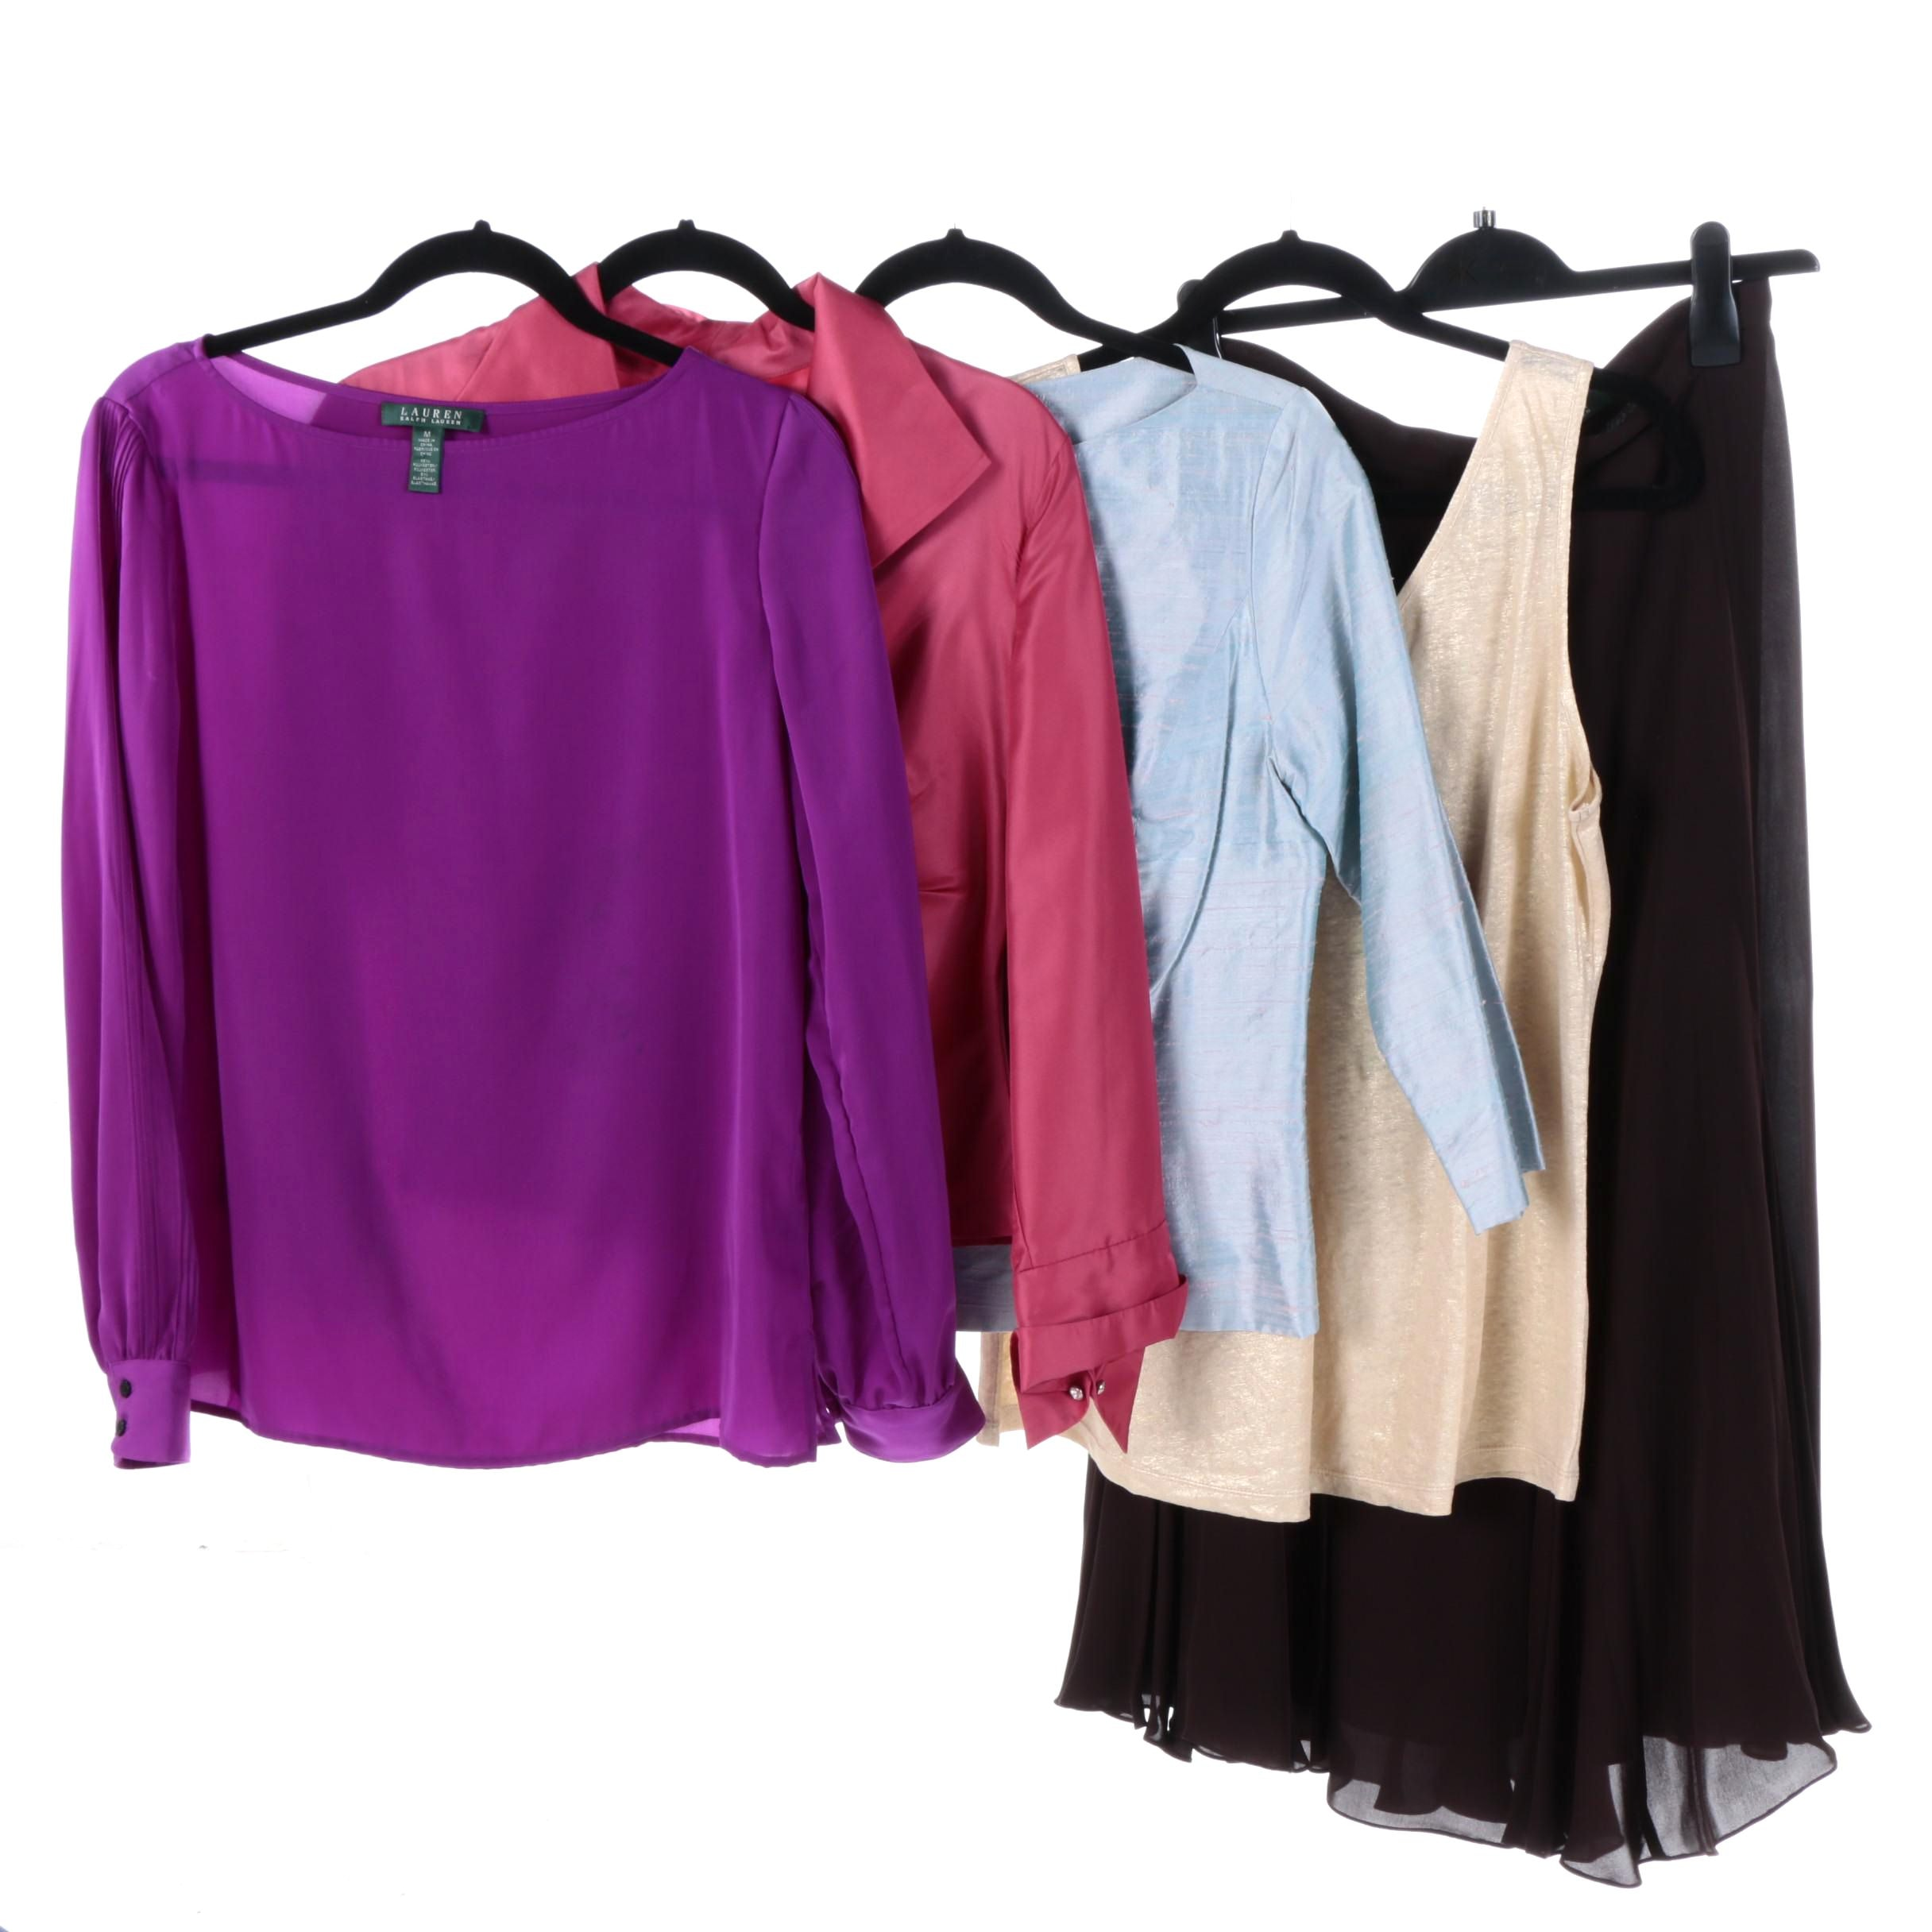 Women's Tops and Skirt Including Lauren Ralph Lauren